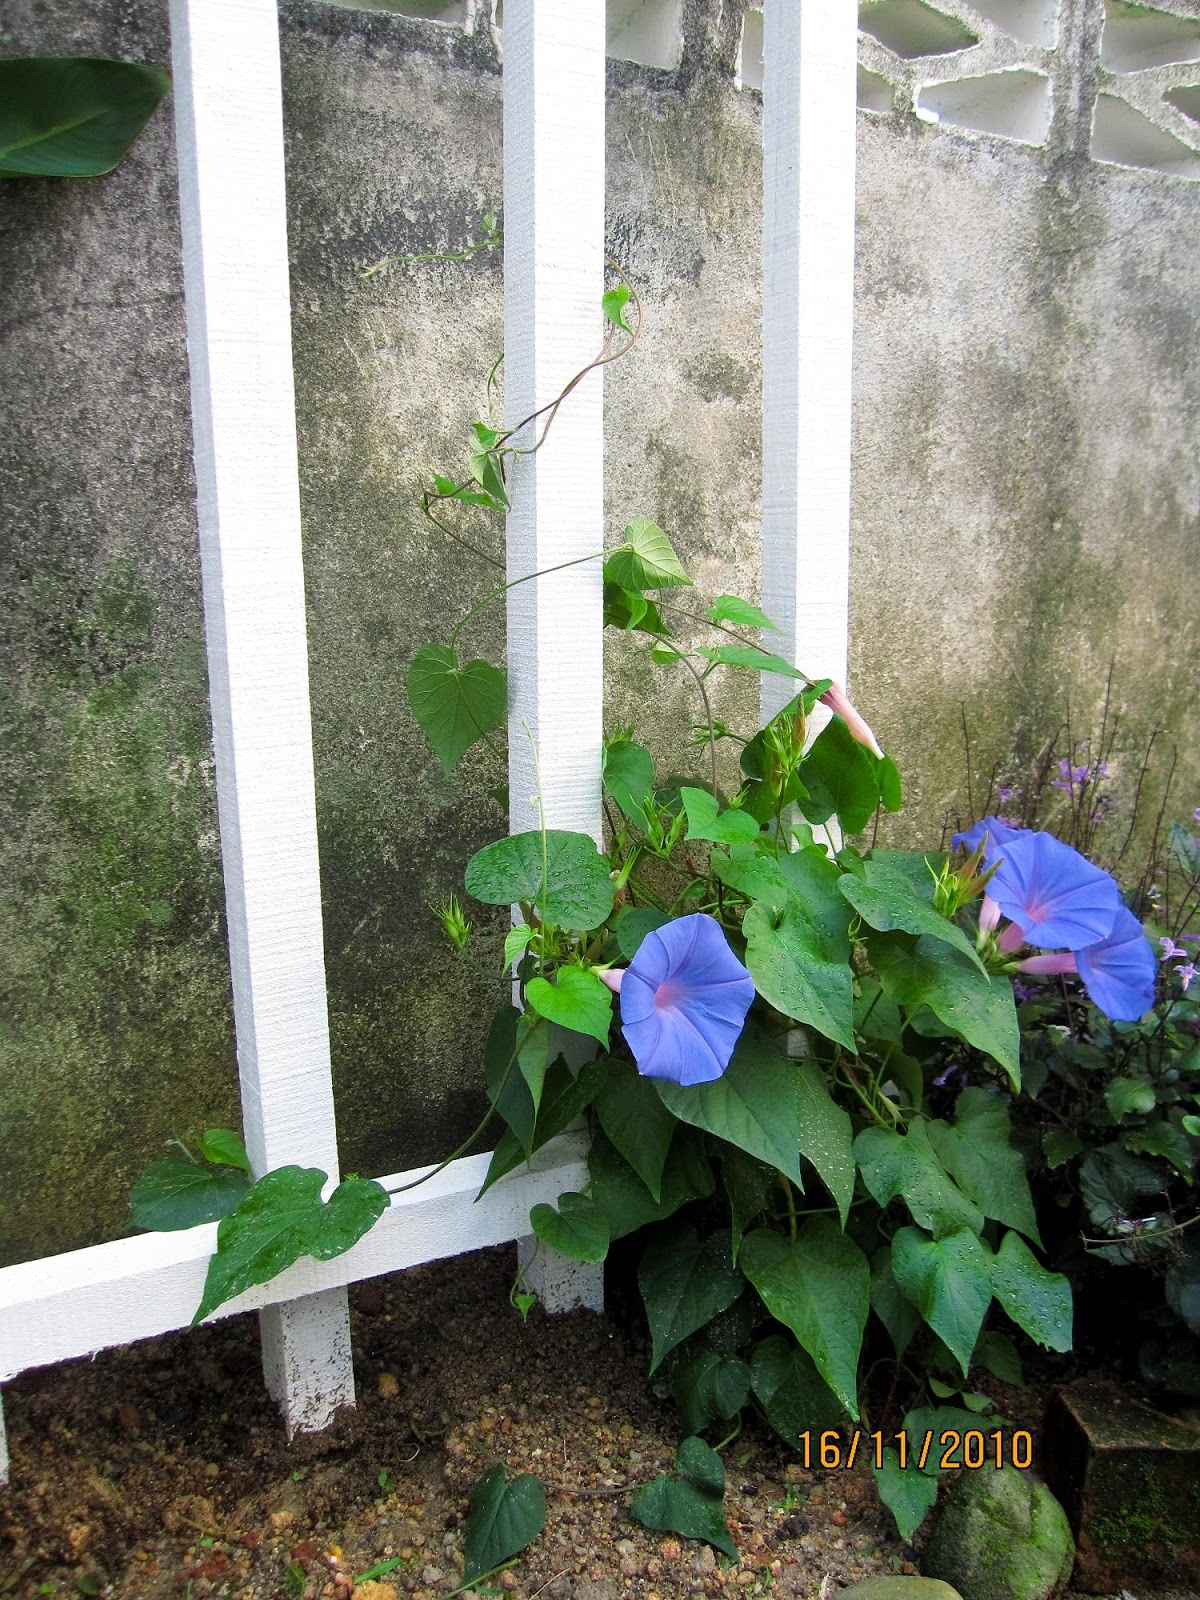 how to train morningglory to climb the fence